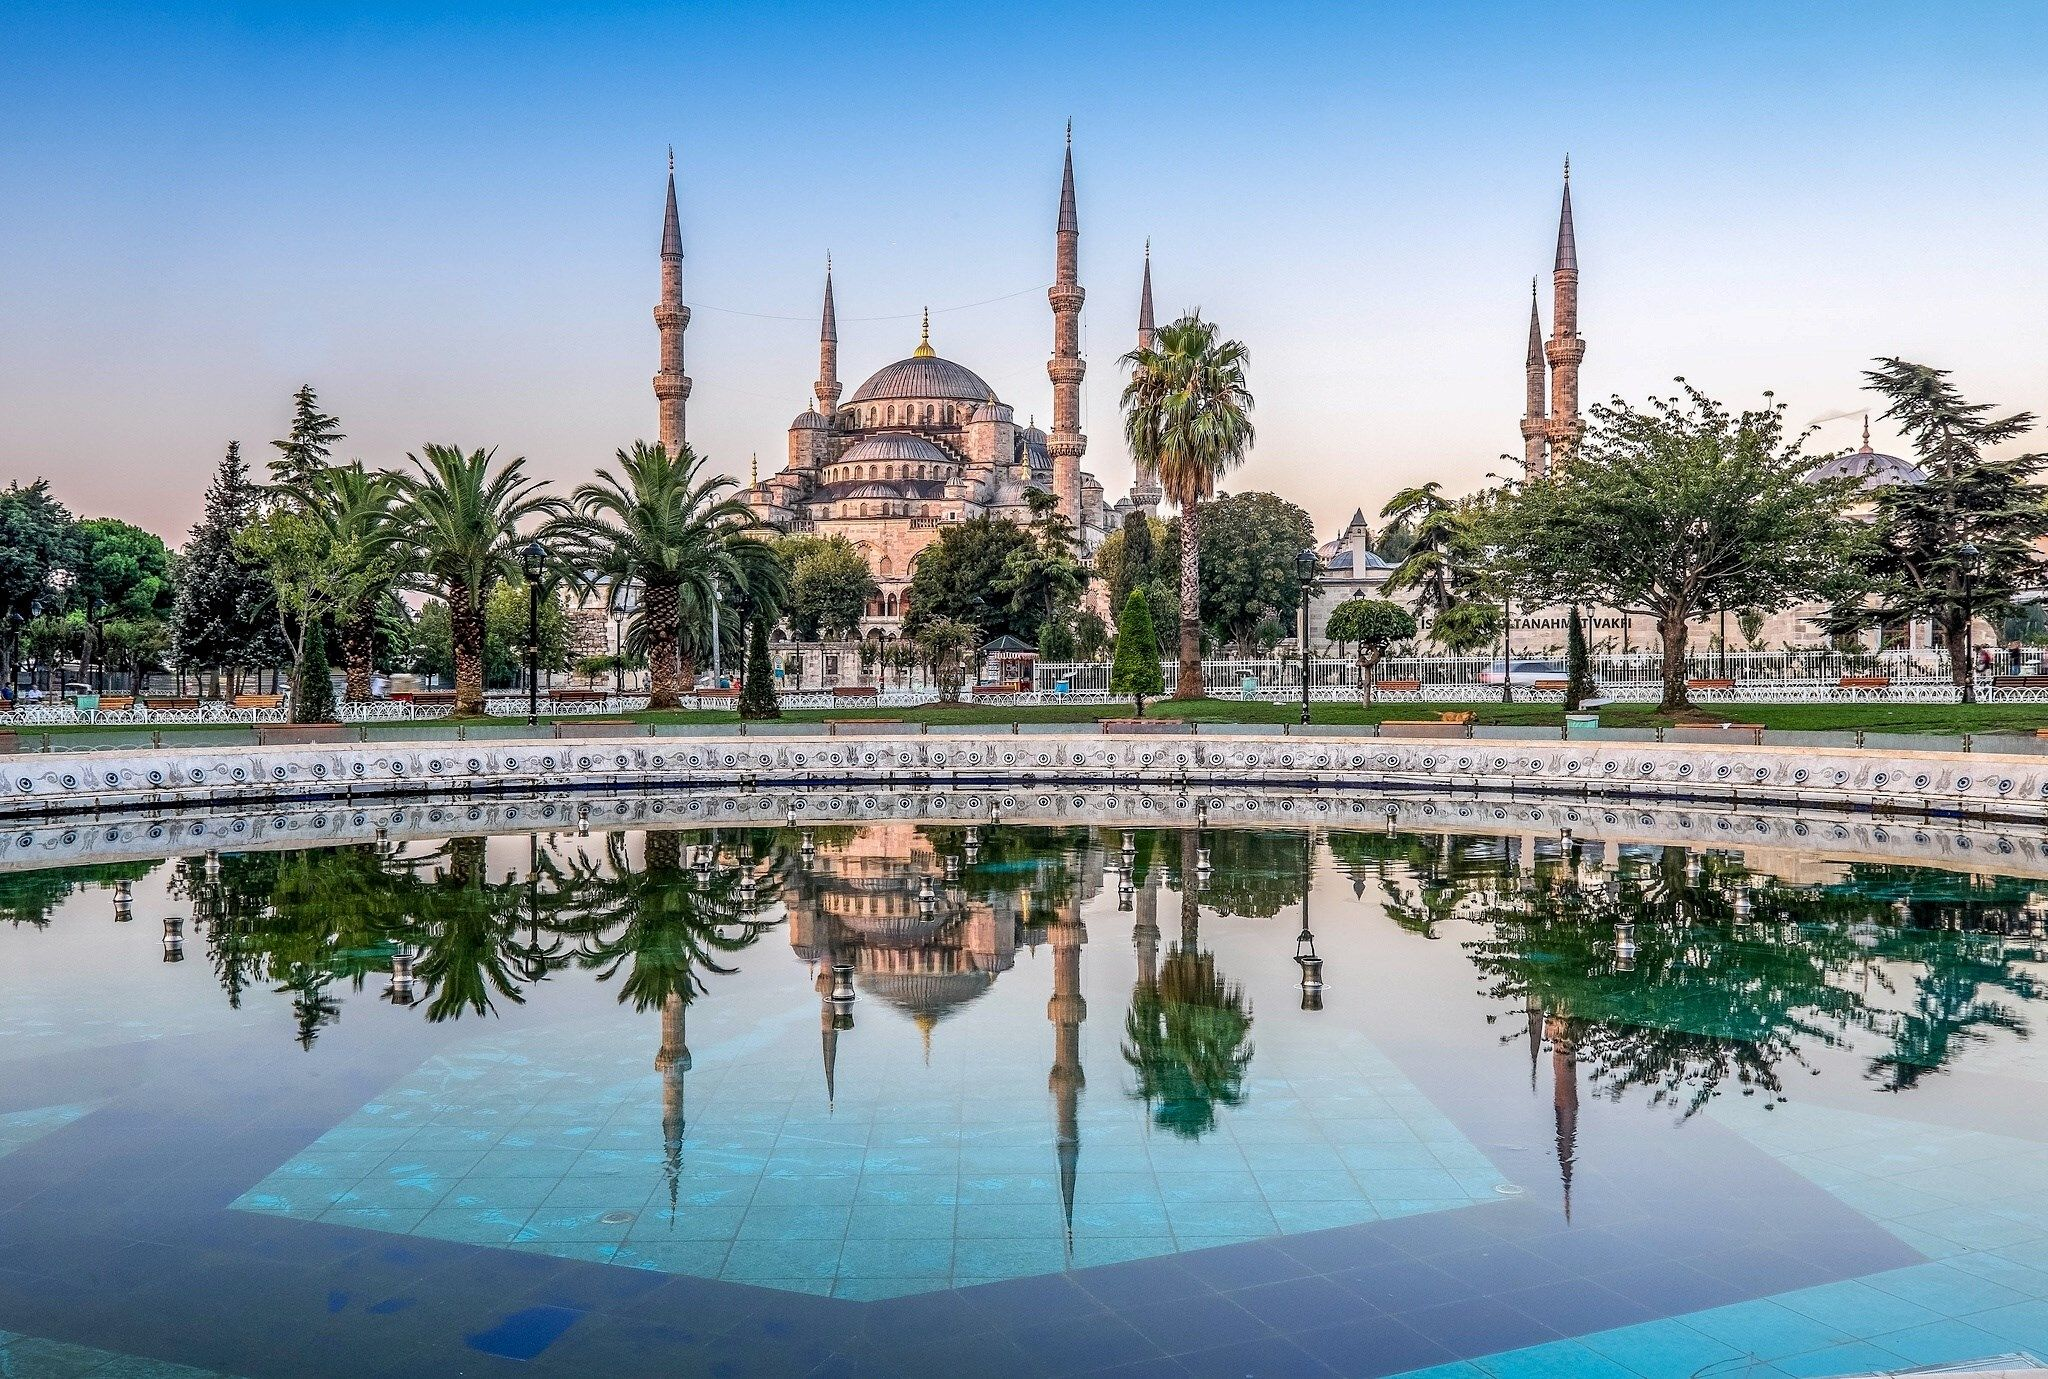 Free Desktop Backgrounds For Sultan Ahmed Mosque Blue Mosque Mosque Istanbul